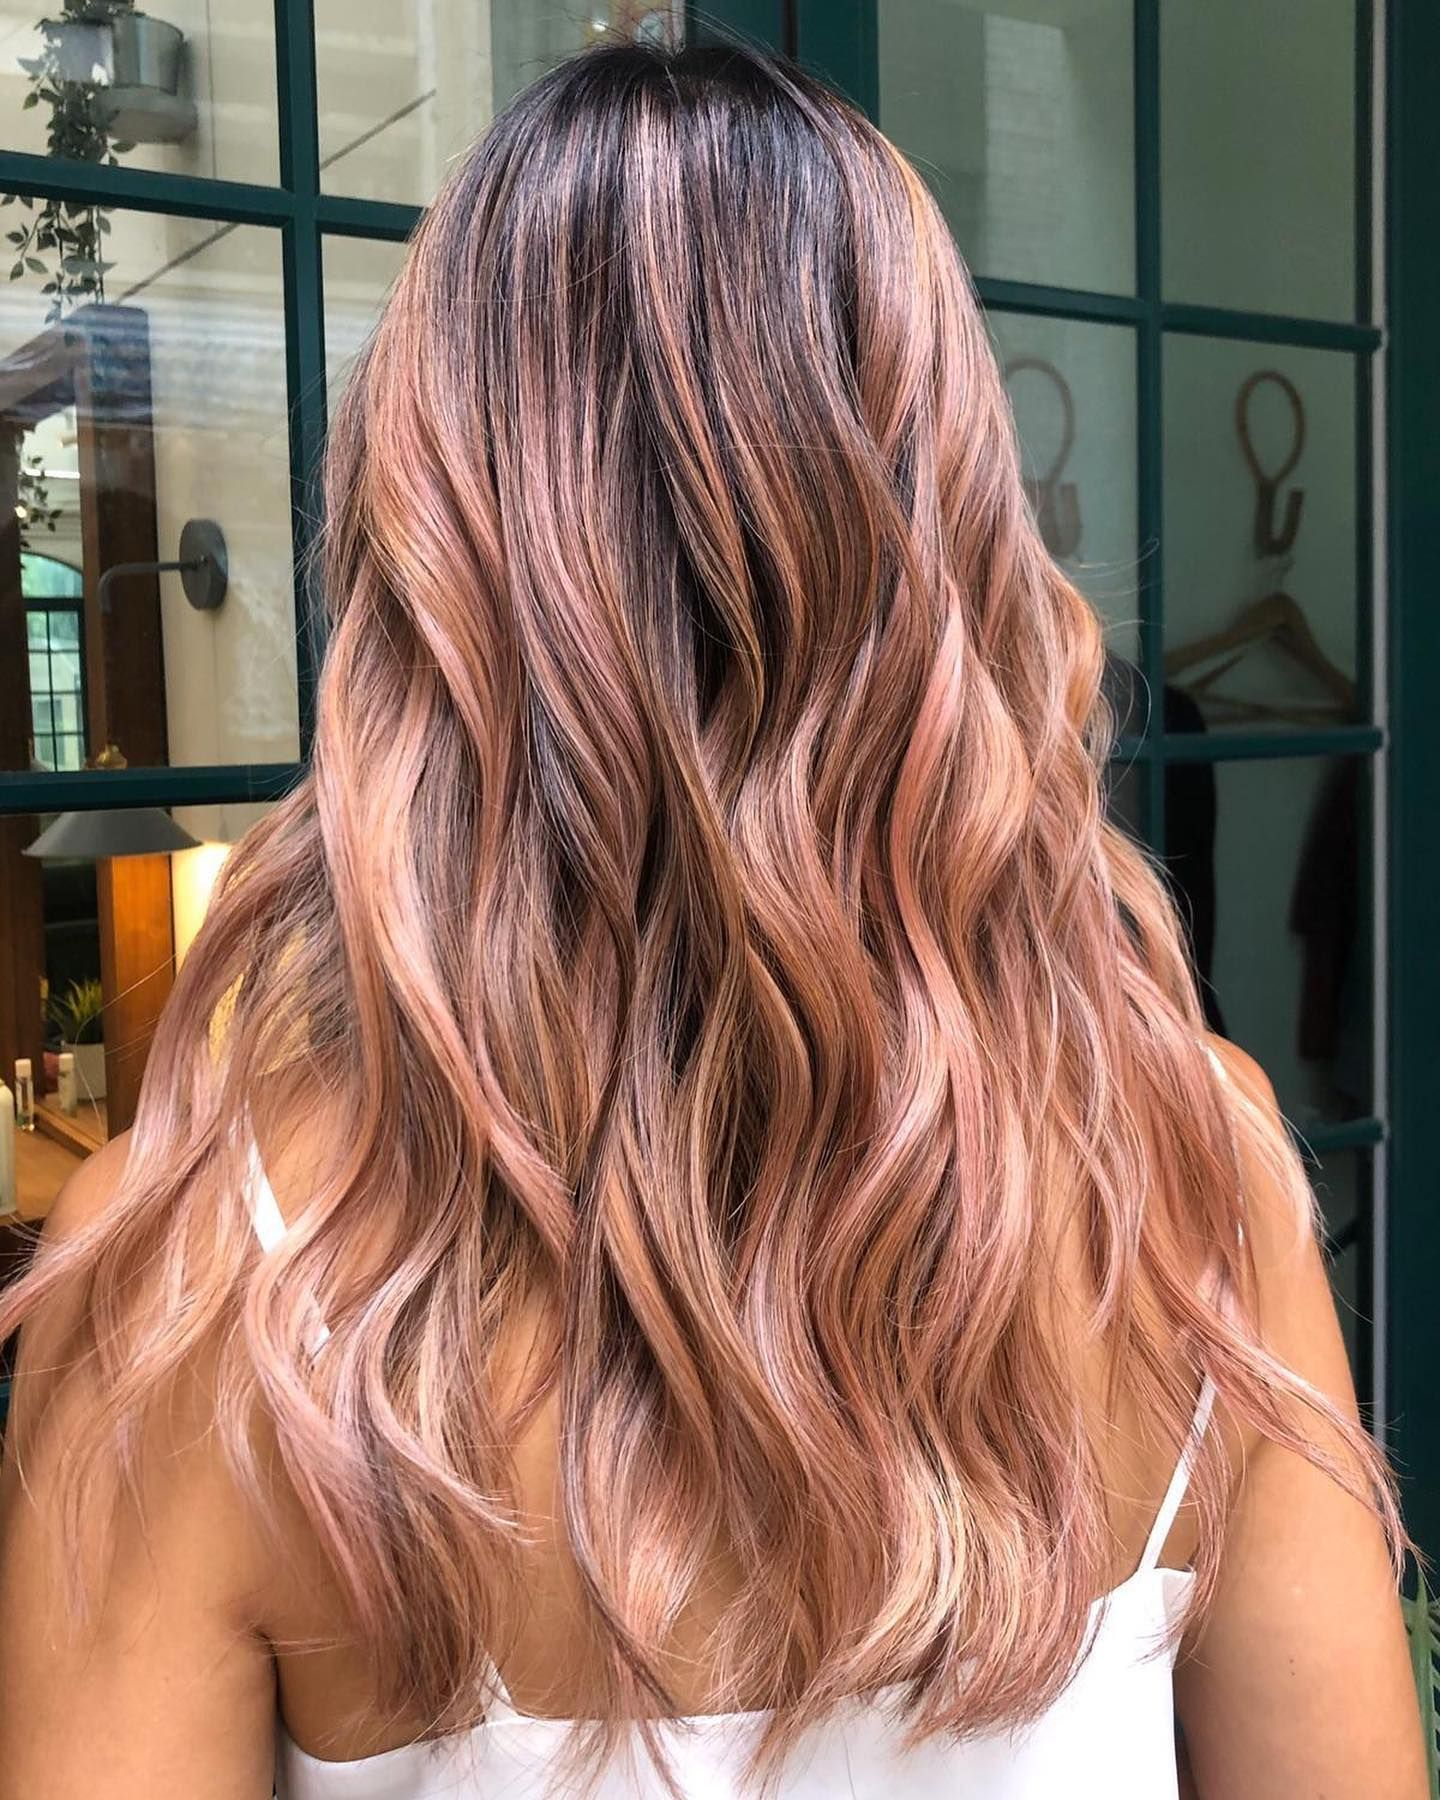 The Hair Colour Trends To Try This Summer According To Hair Stylists Tatler Hong Kong